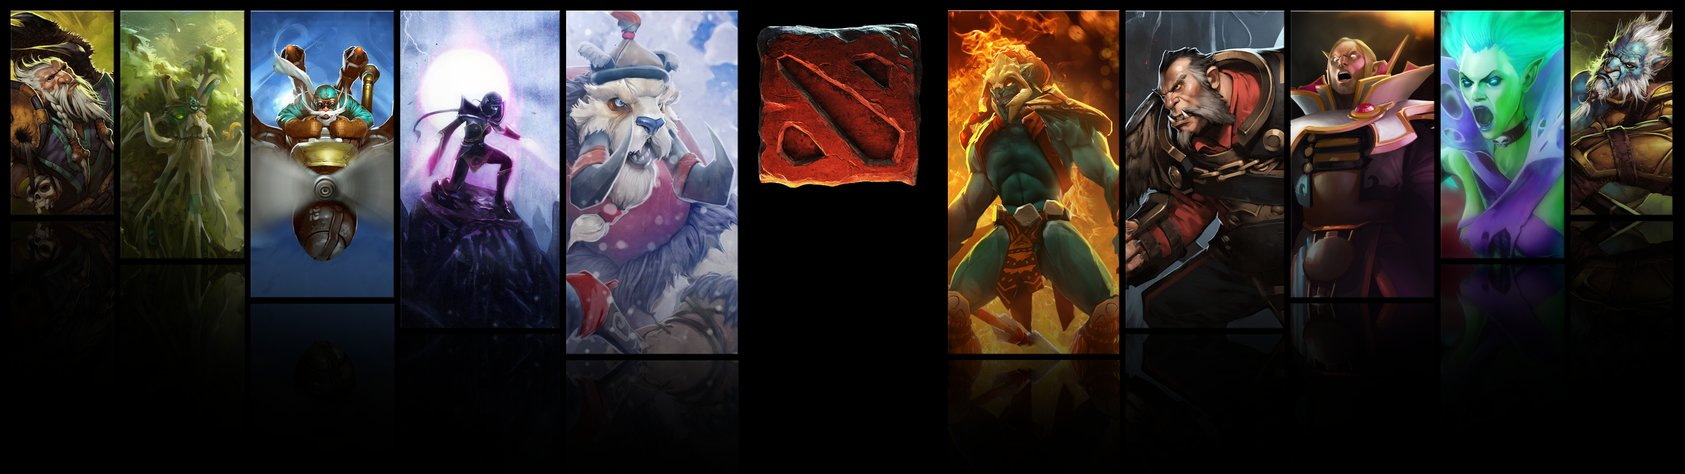 Dual Screen Wallpapers Reddit Dota 2 Dual screen Wallpaper 1685x474